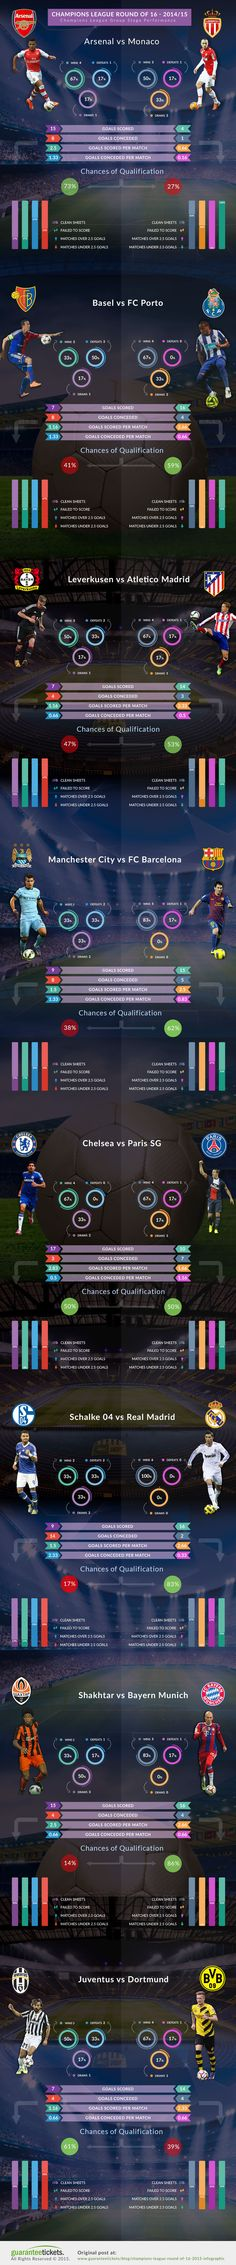 UEFA Champions League Knock Out Stage Infographic Via Guarantee Tickets | Sports Techie blog http://sportstechie.net/uefa-champions-league-knock-out-stage-infographic-via-guarantee-tickets/